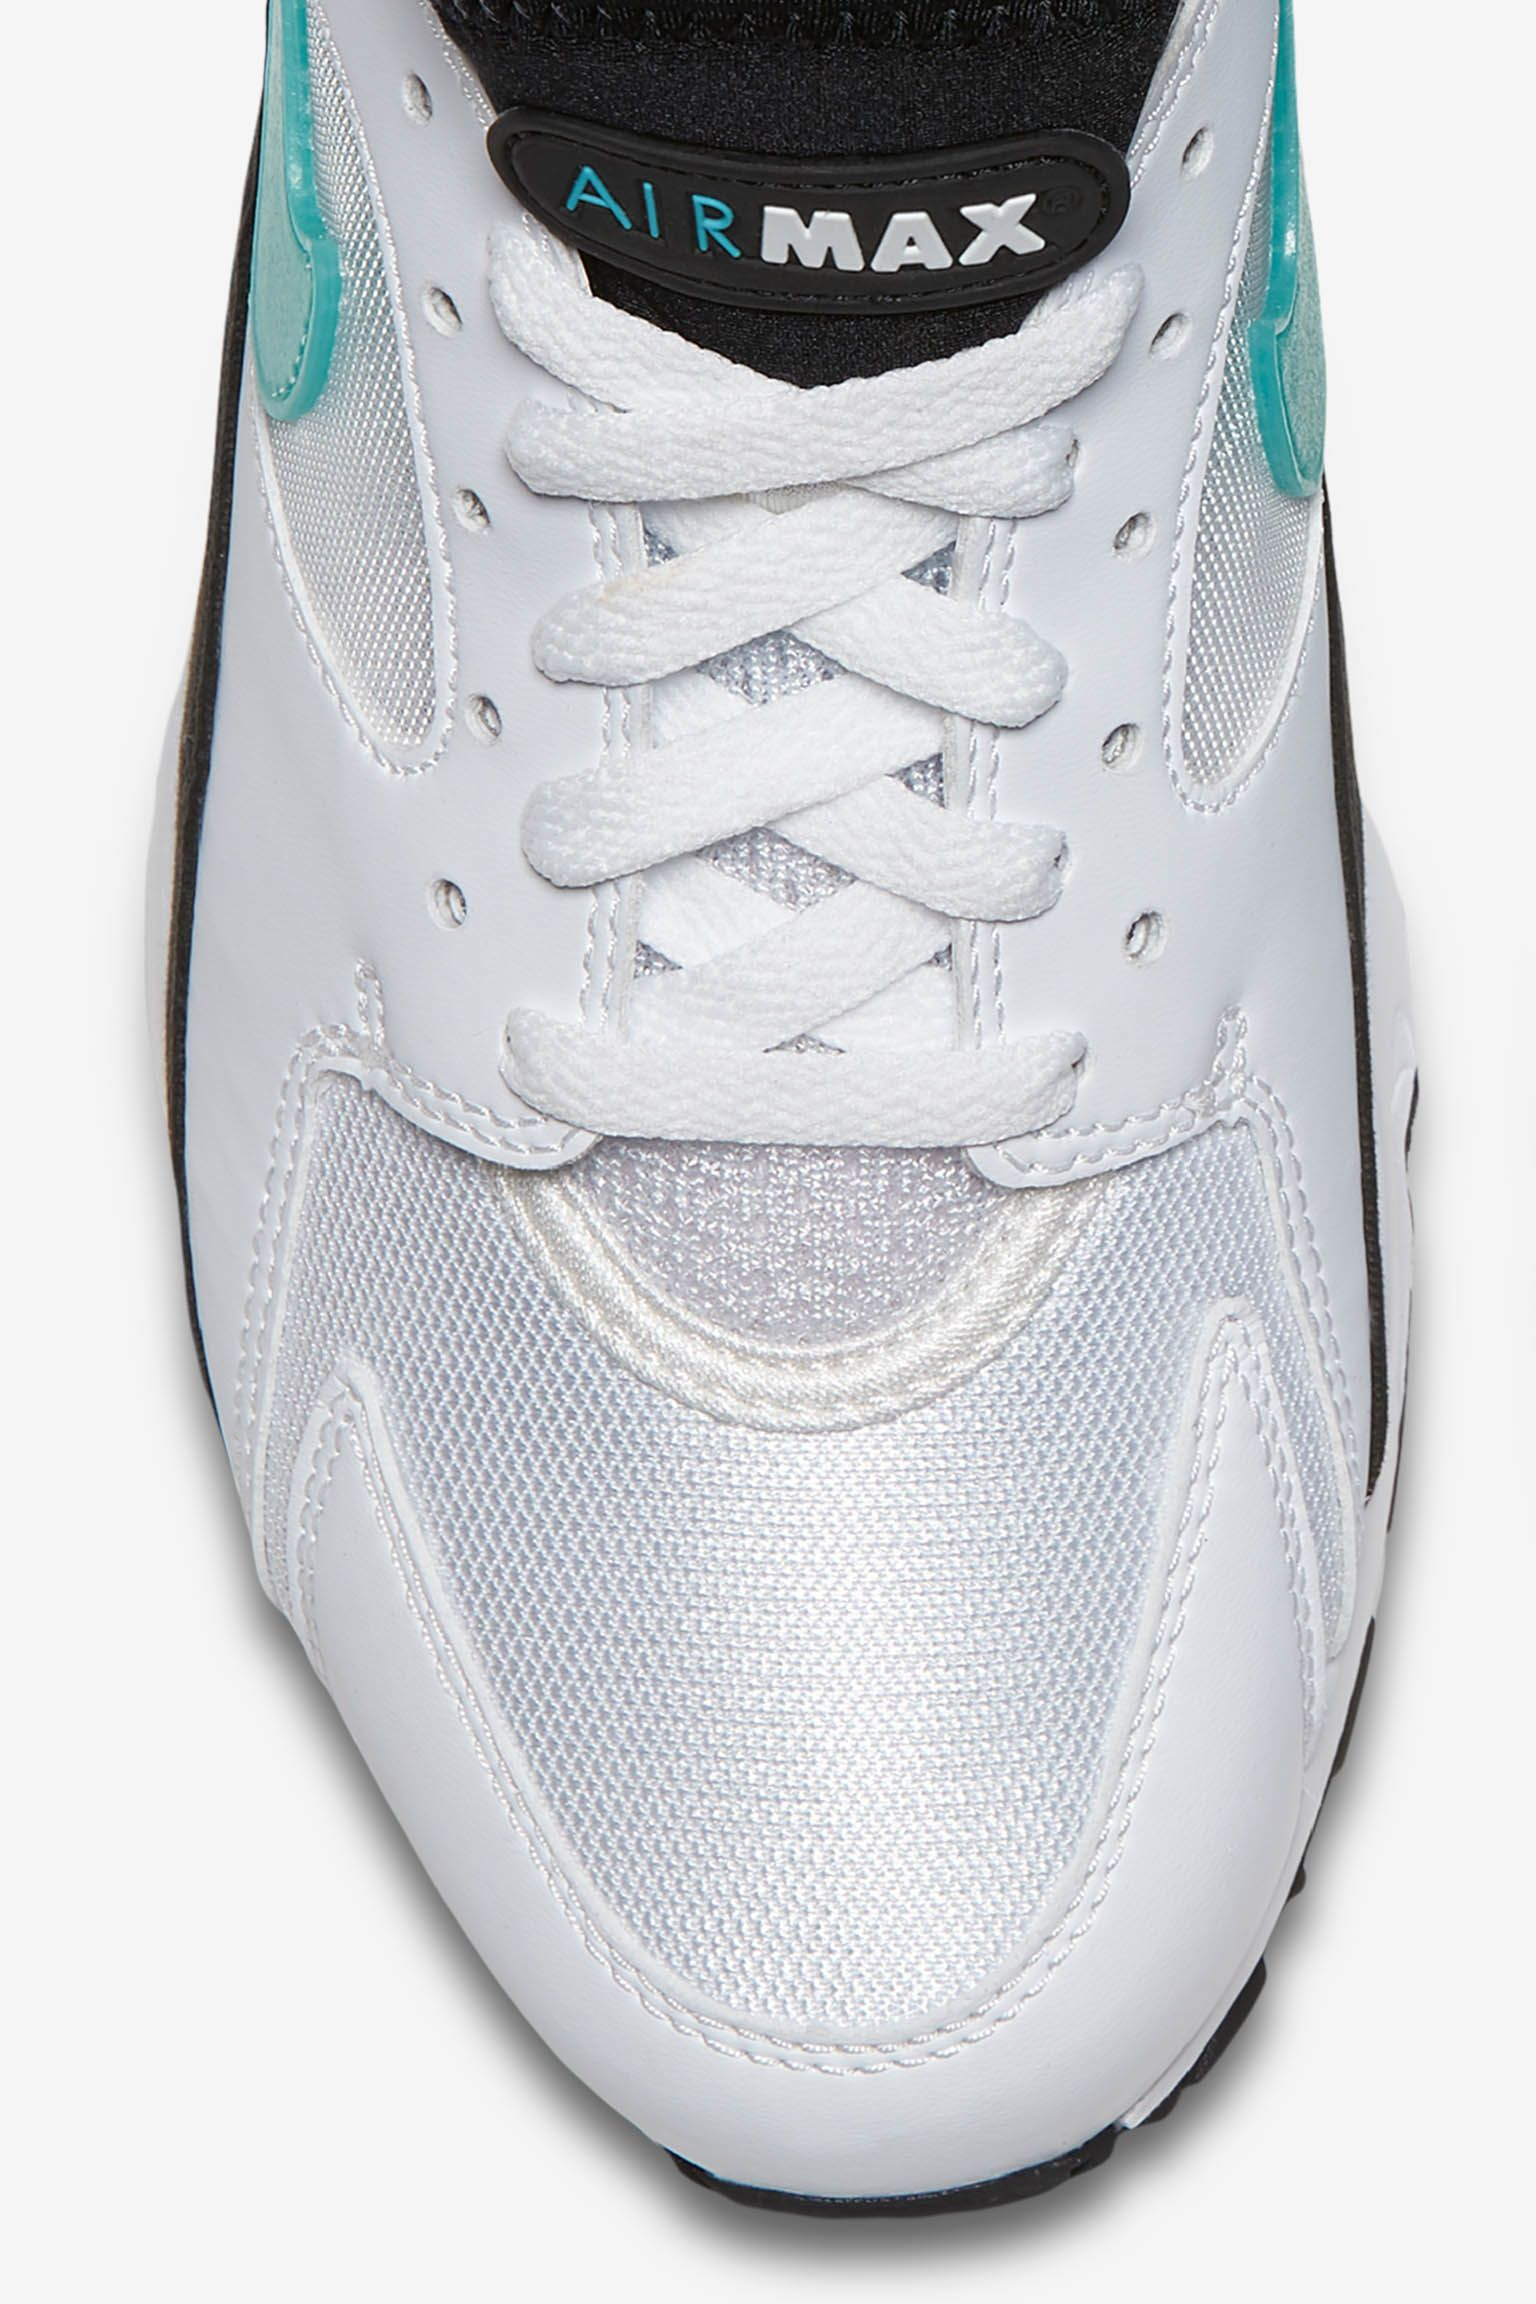 Nike Air Max 'White & Sport Turquoise' Release Date